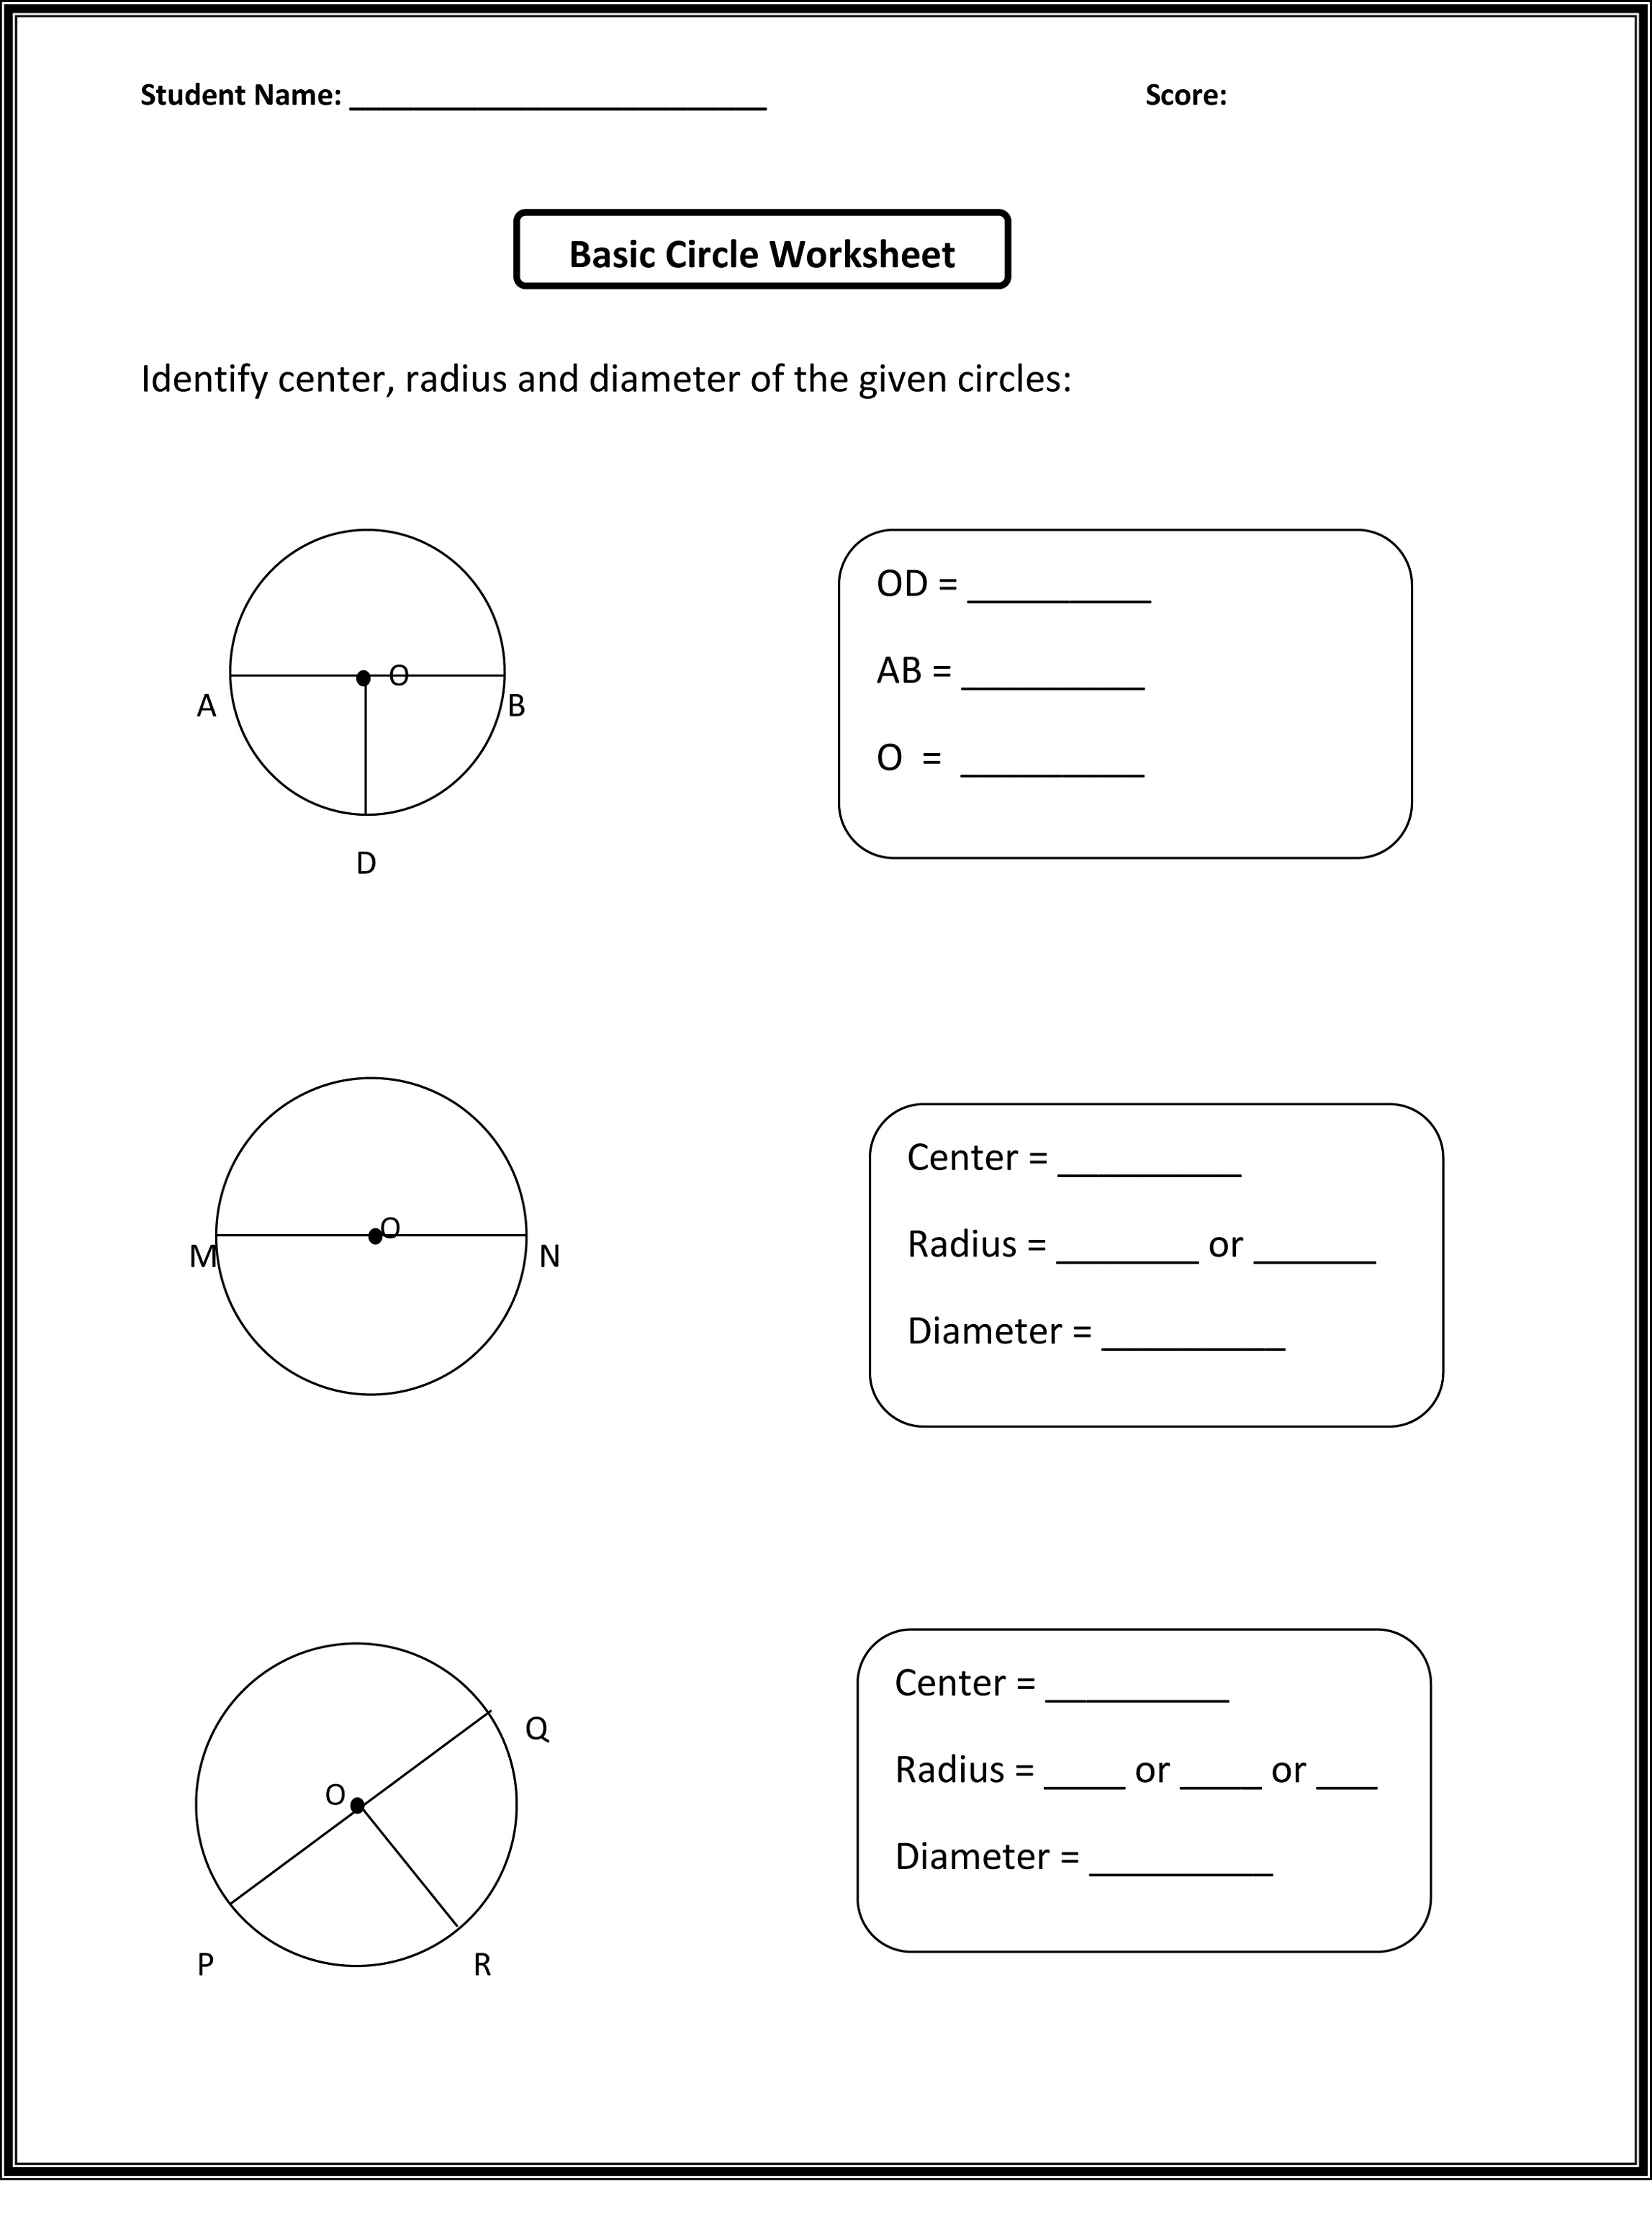 Search And Shade Math Worksheets – Search and Shade Math Worksheets